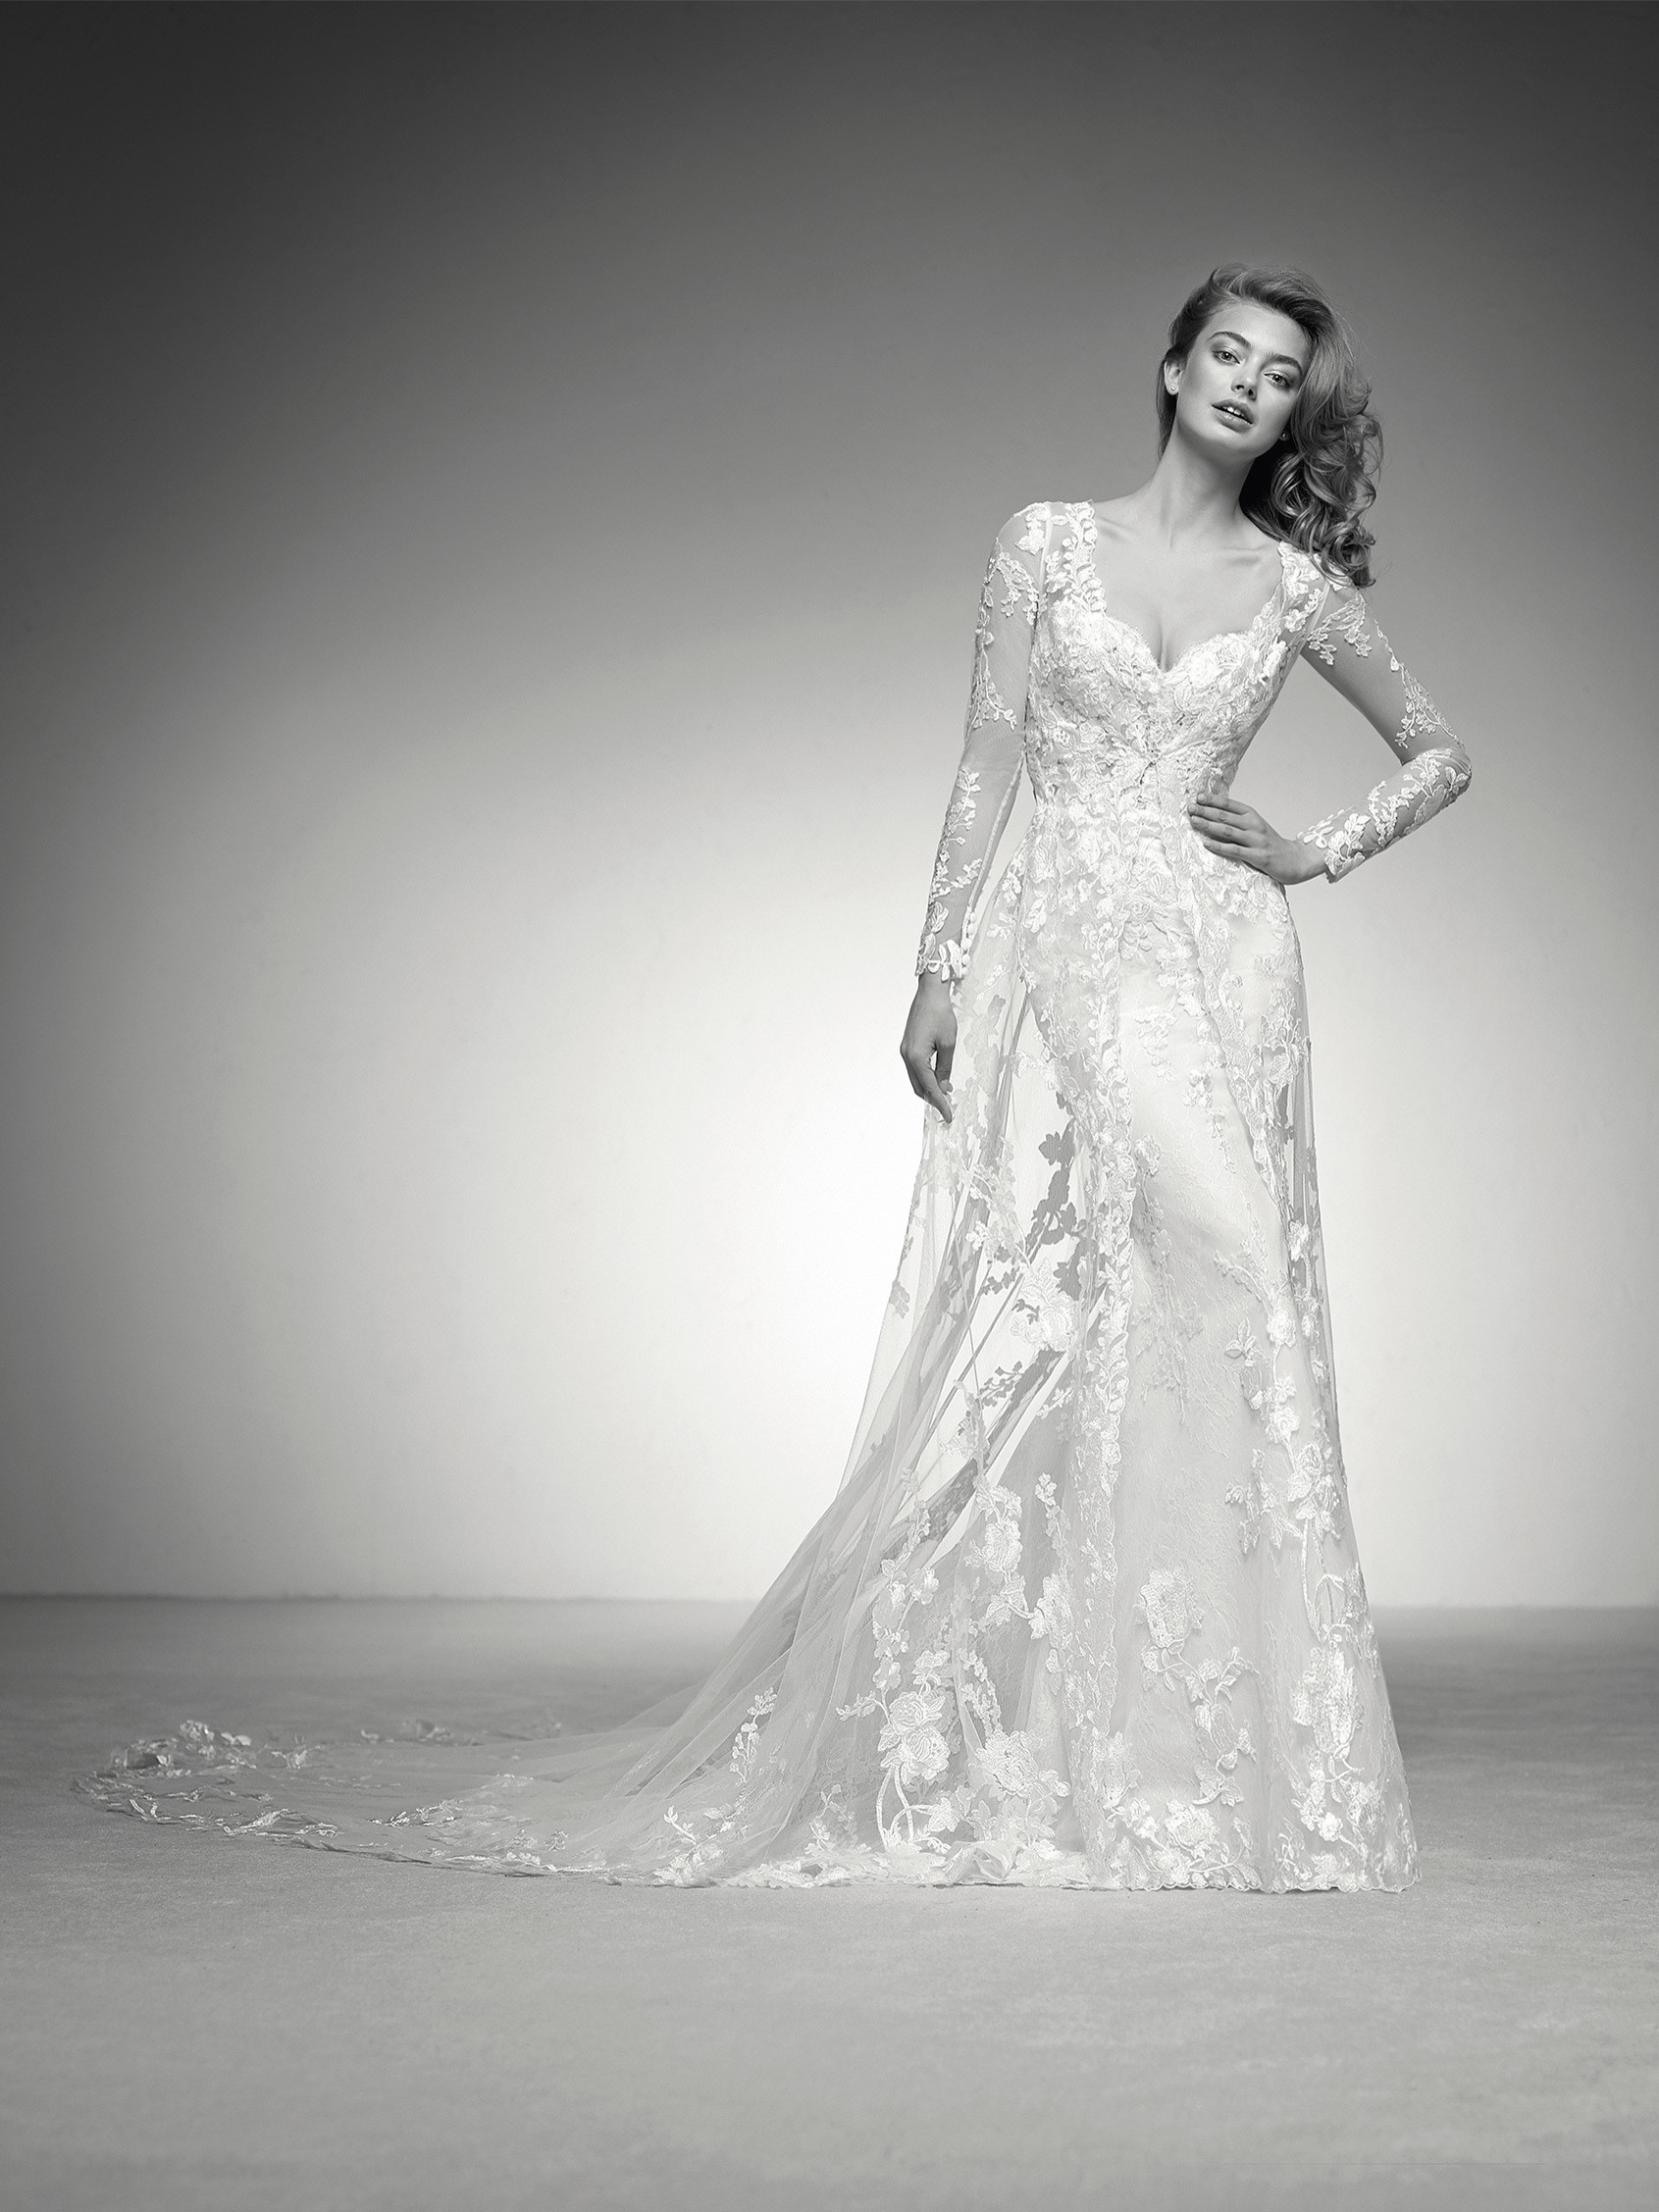 Ilma Mermaid Wedding Dress With A Tulle And Lace Coat